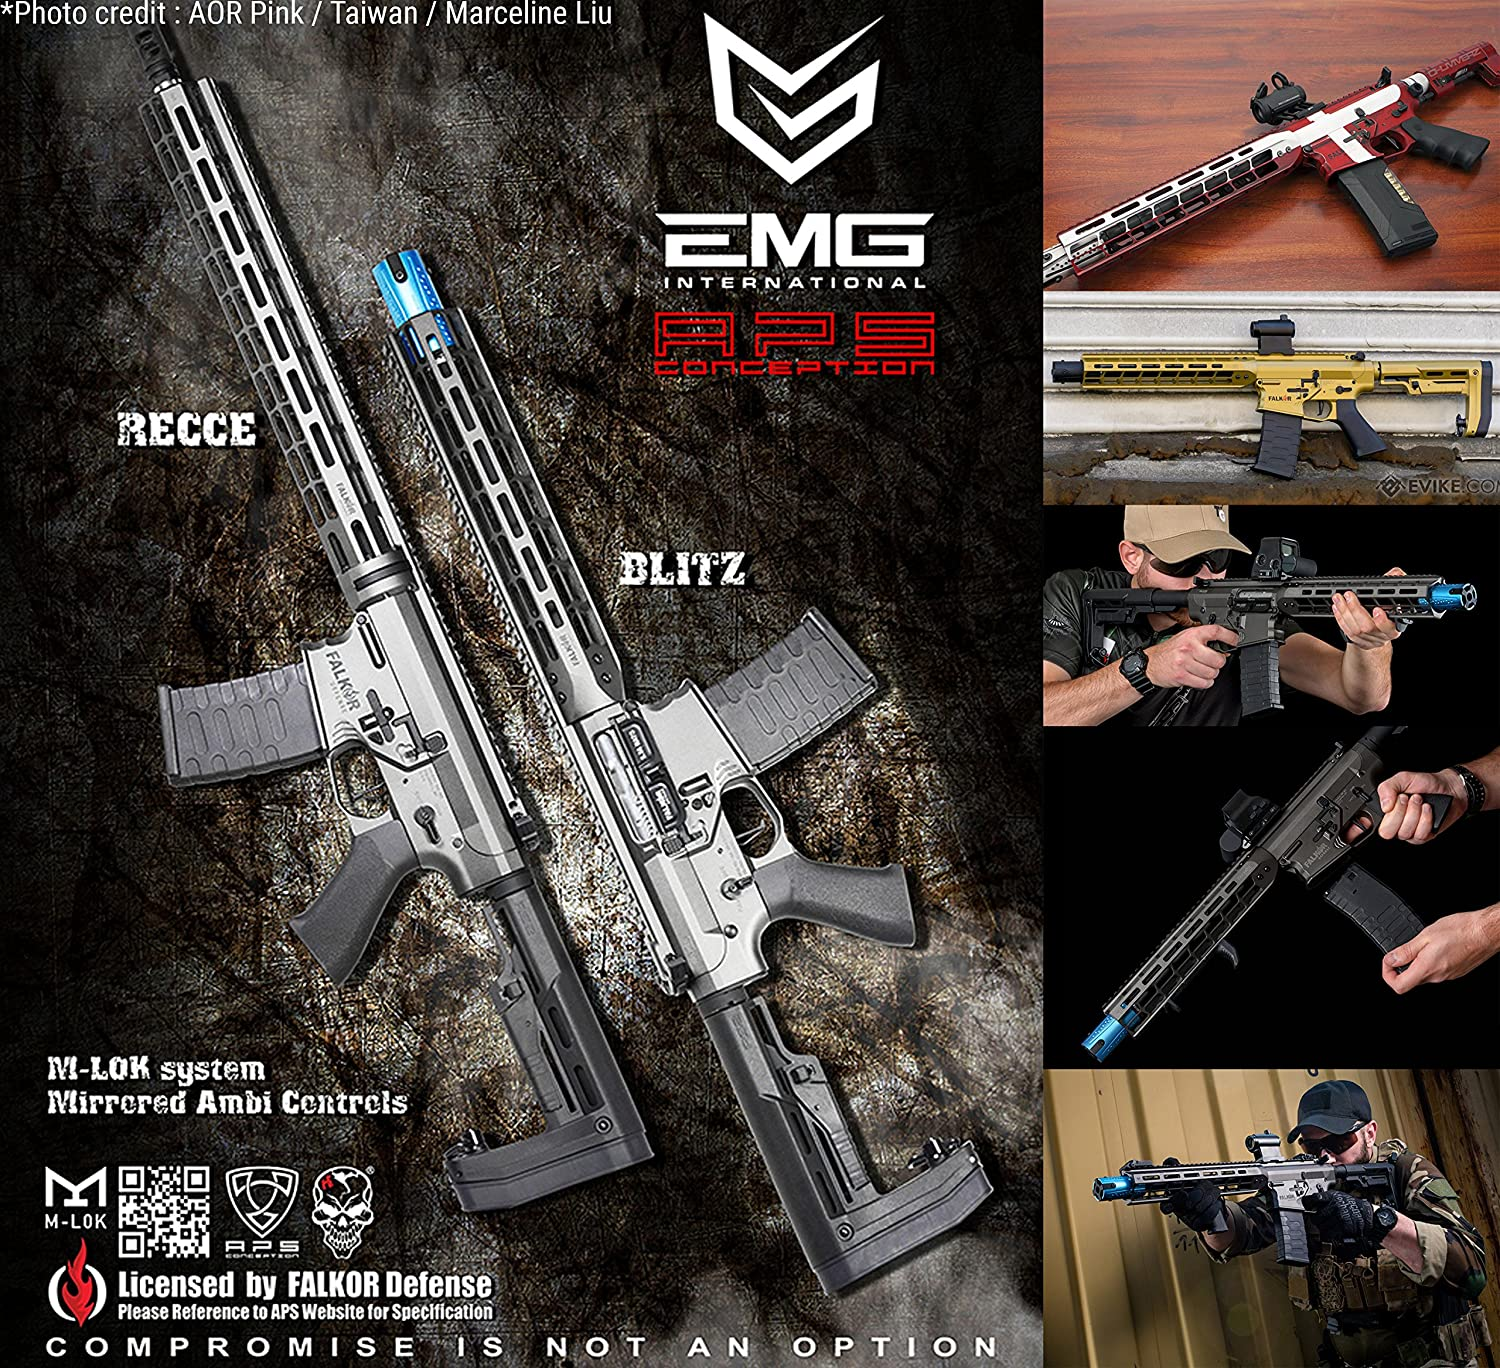 Evike Emg Falkor Ar 15 Blitz Sbr M4 Airsoft Aeg Rifle Aug Gearbox Wiring Diagram Color And Fps Options Sports Outdoors